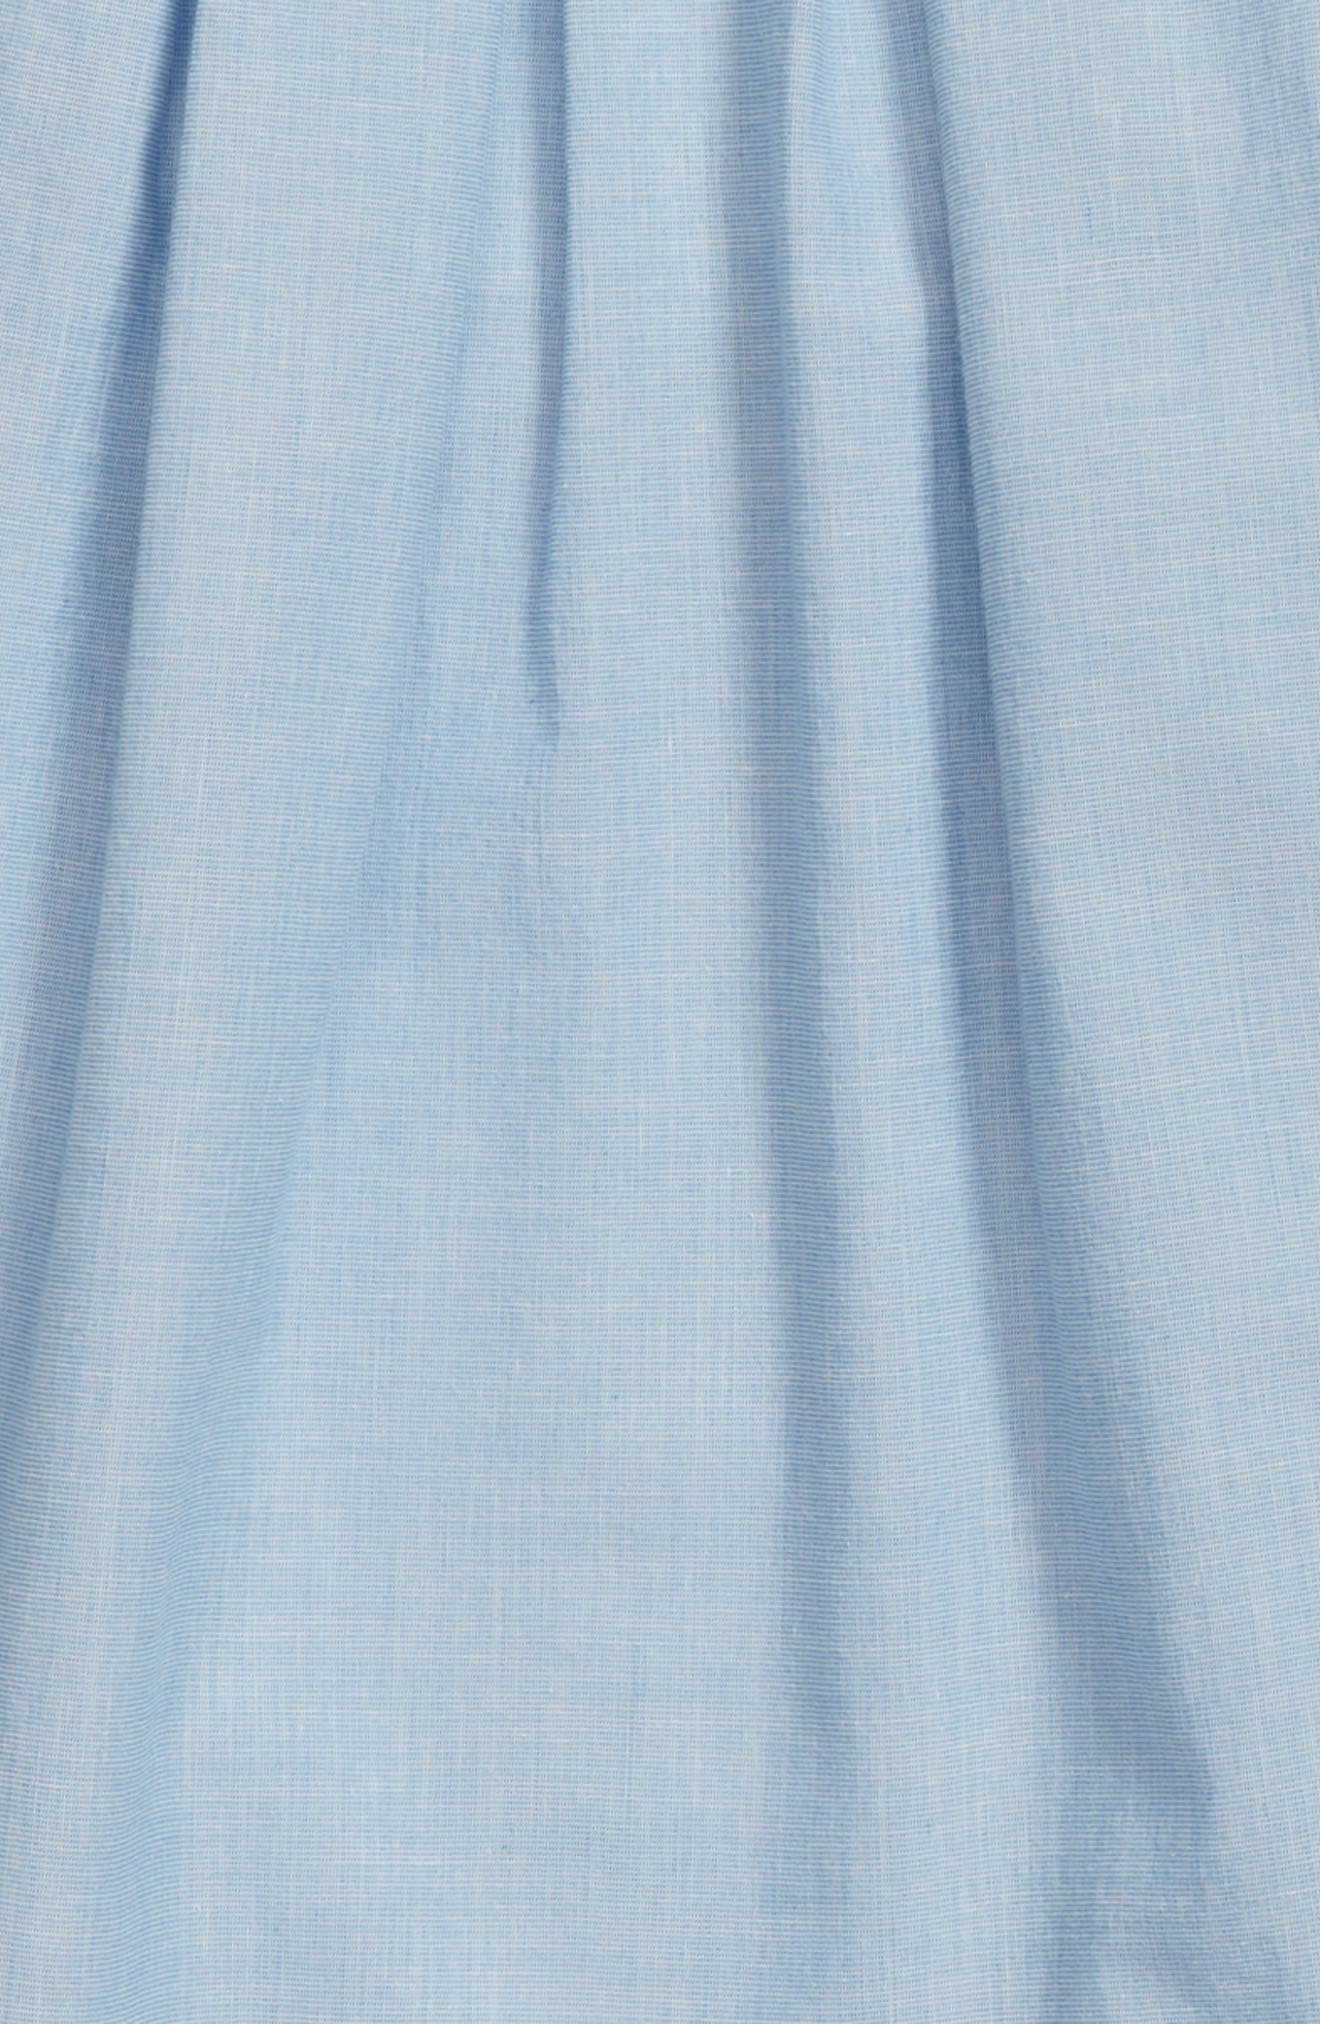 Pleated Chambray Gaucho Pants,                             Alternate thumbnail 3, color,